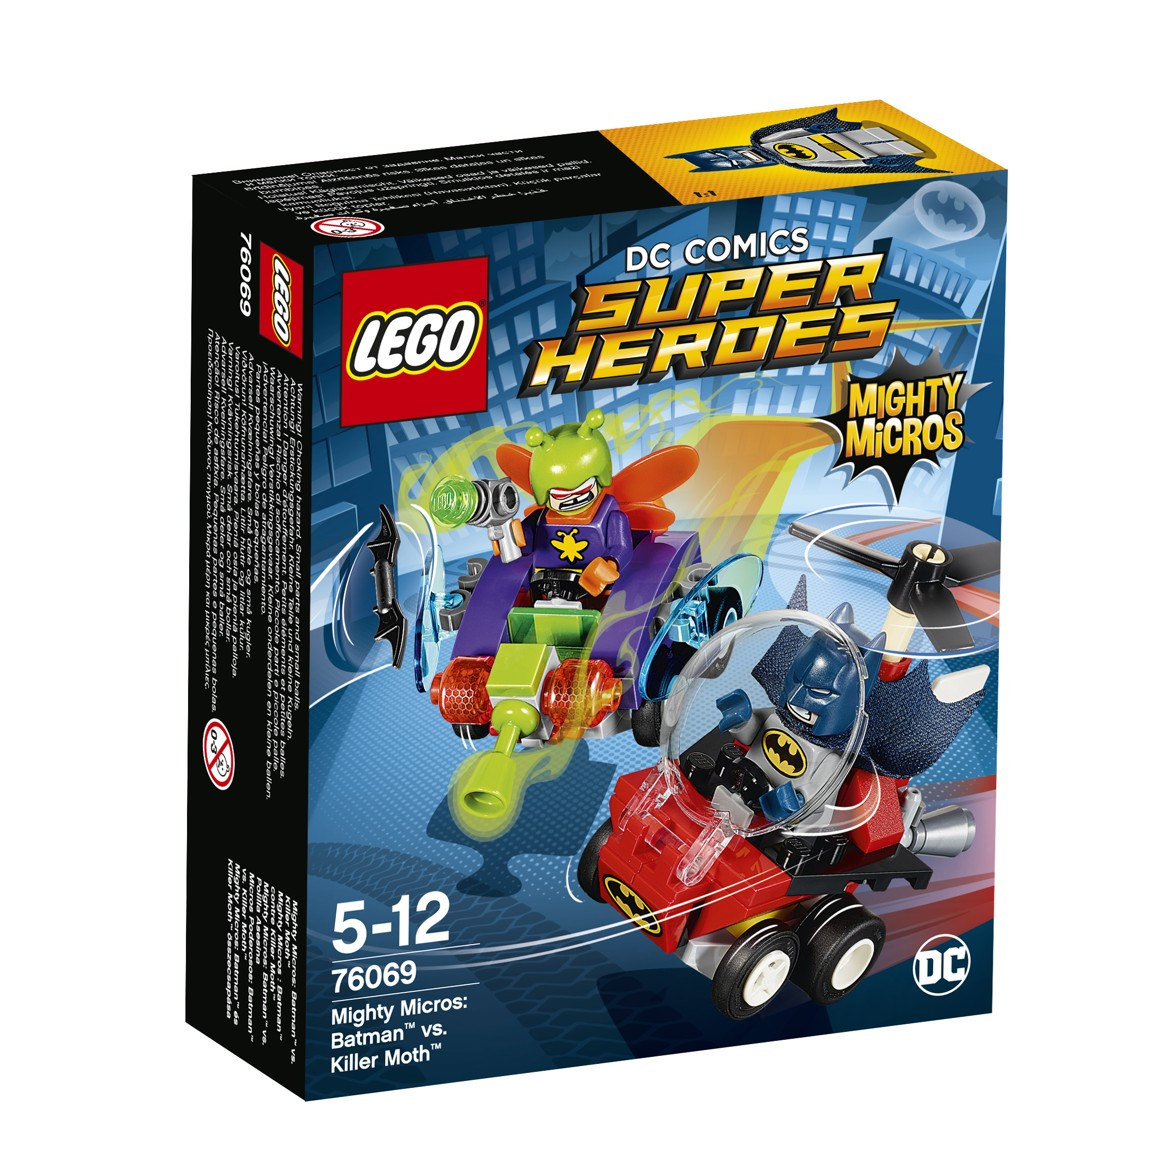 LEGO® DC Comics Super Heroes 76069 Mighty Micros: Batman™ vs. Killer Moth™